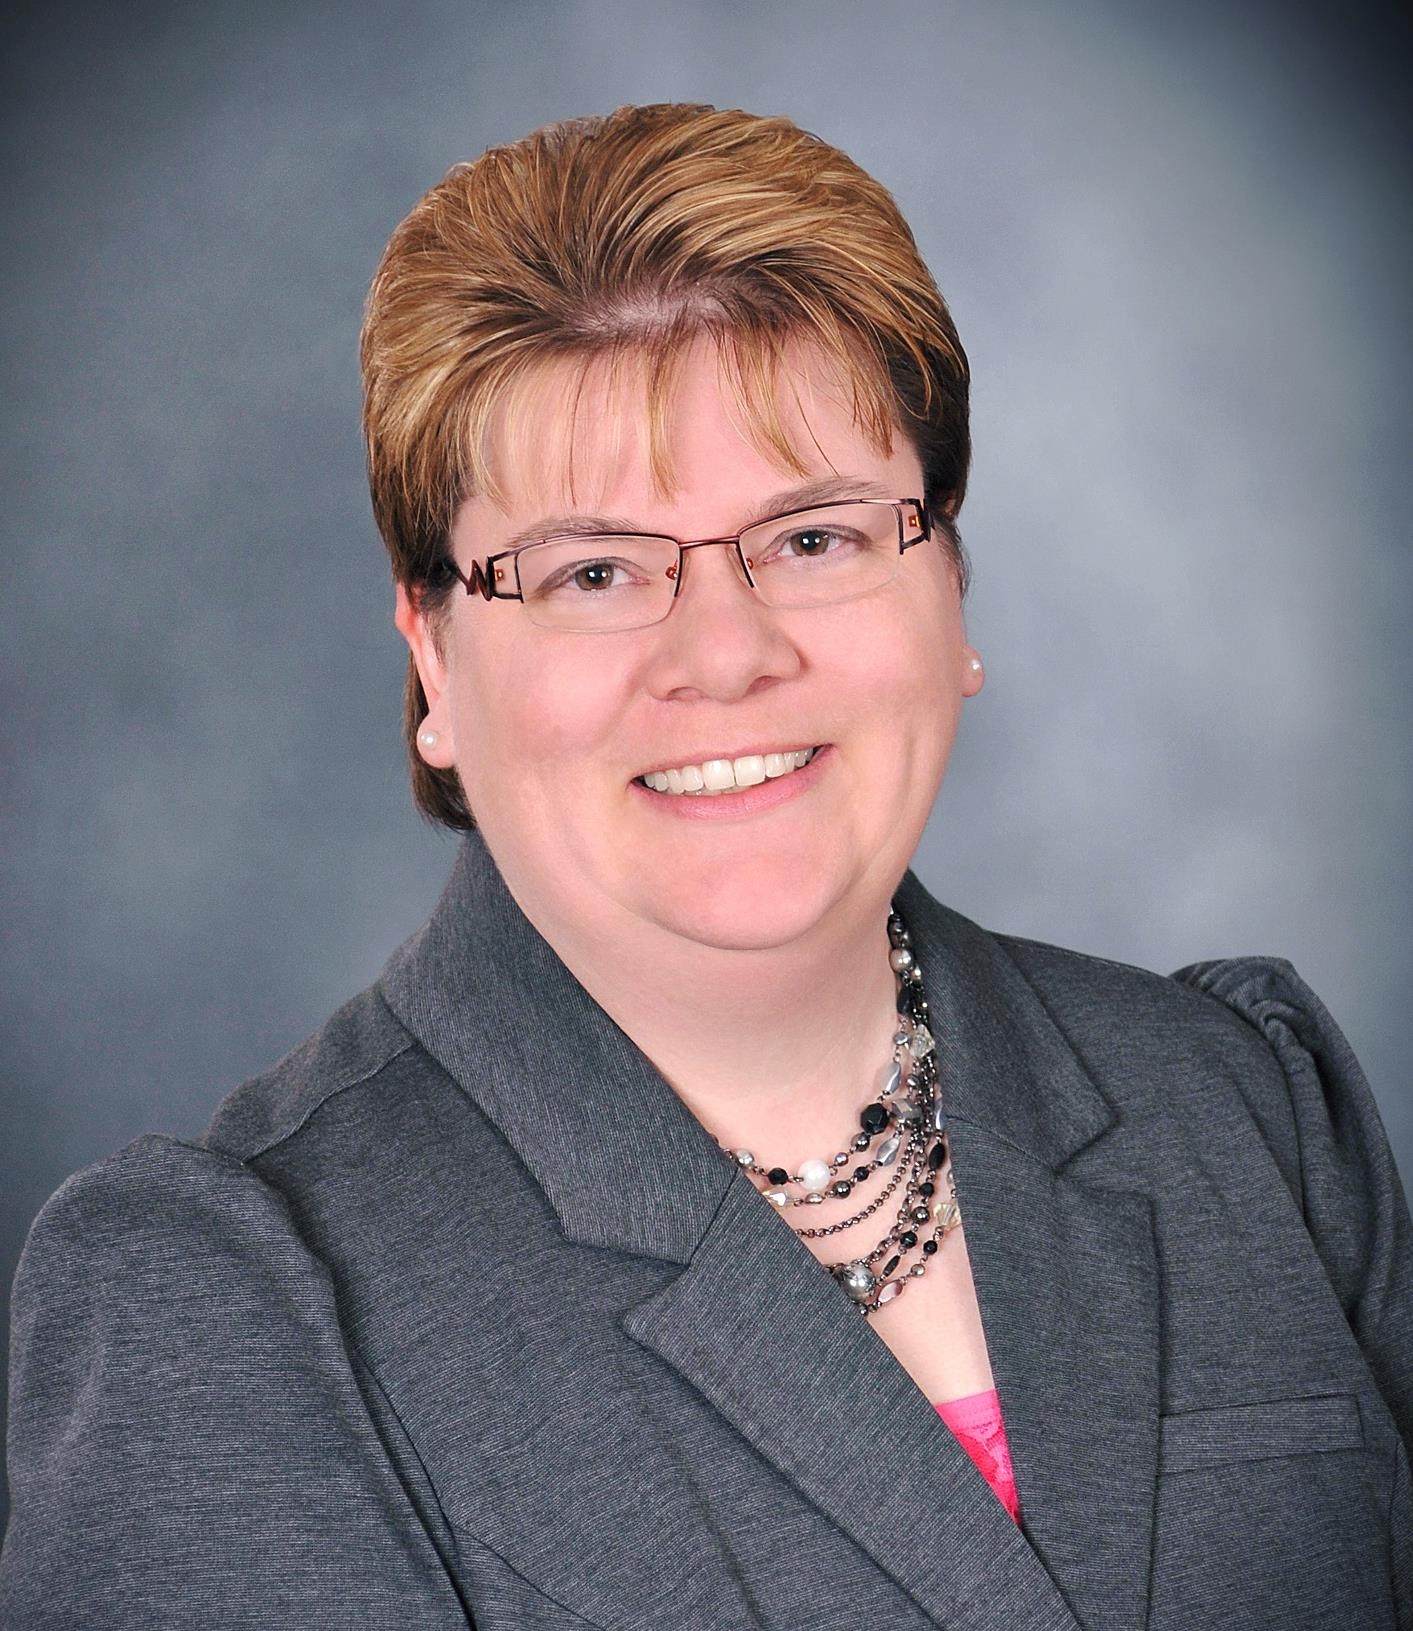 Kathy Kathy is a licensed real estate agent in Watertown WI